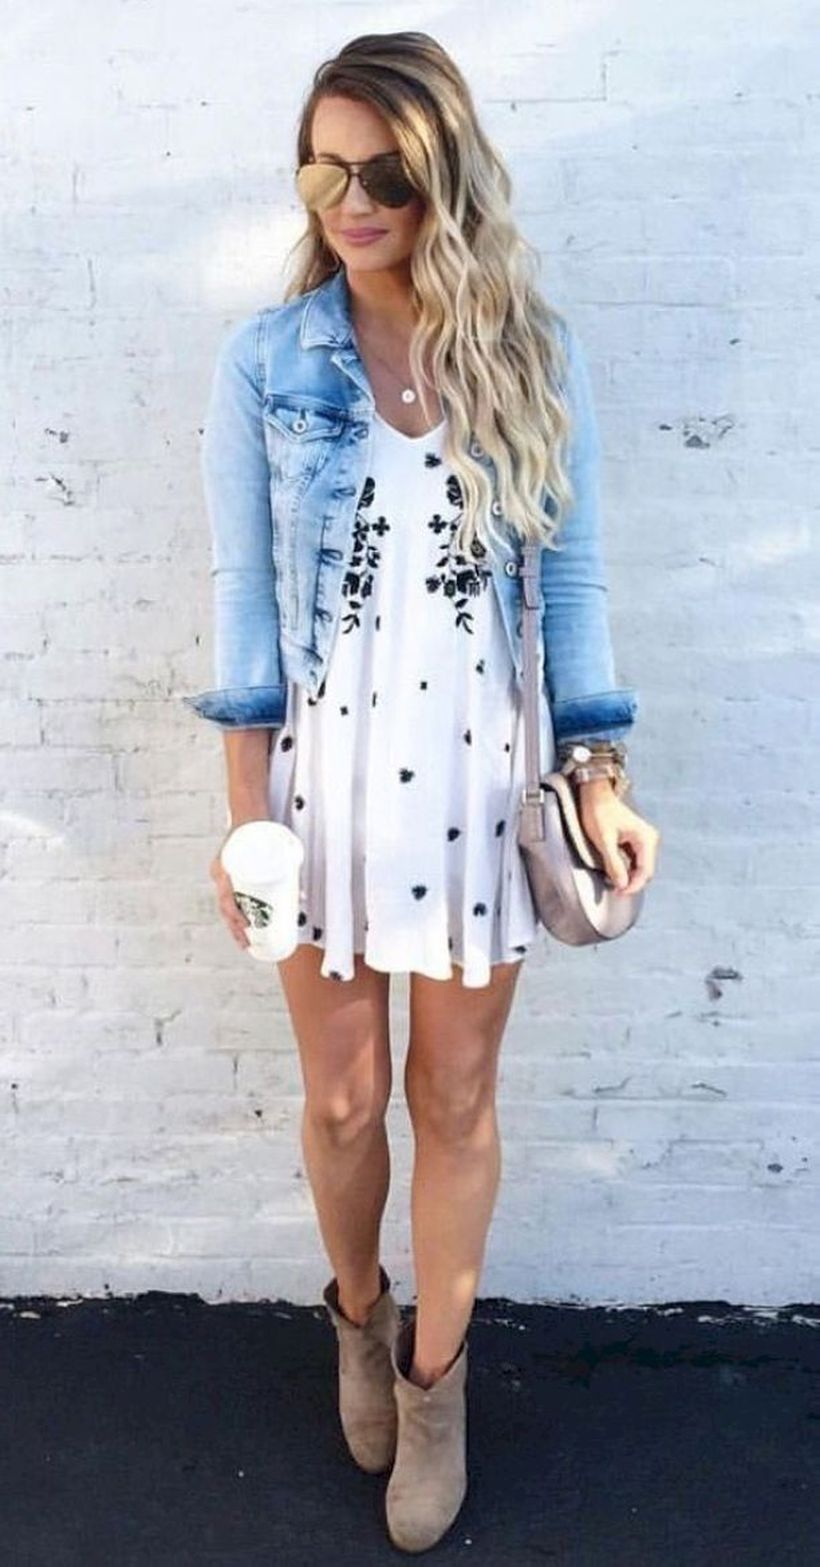 Cool casual street style outfit ideas 2017 5